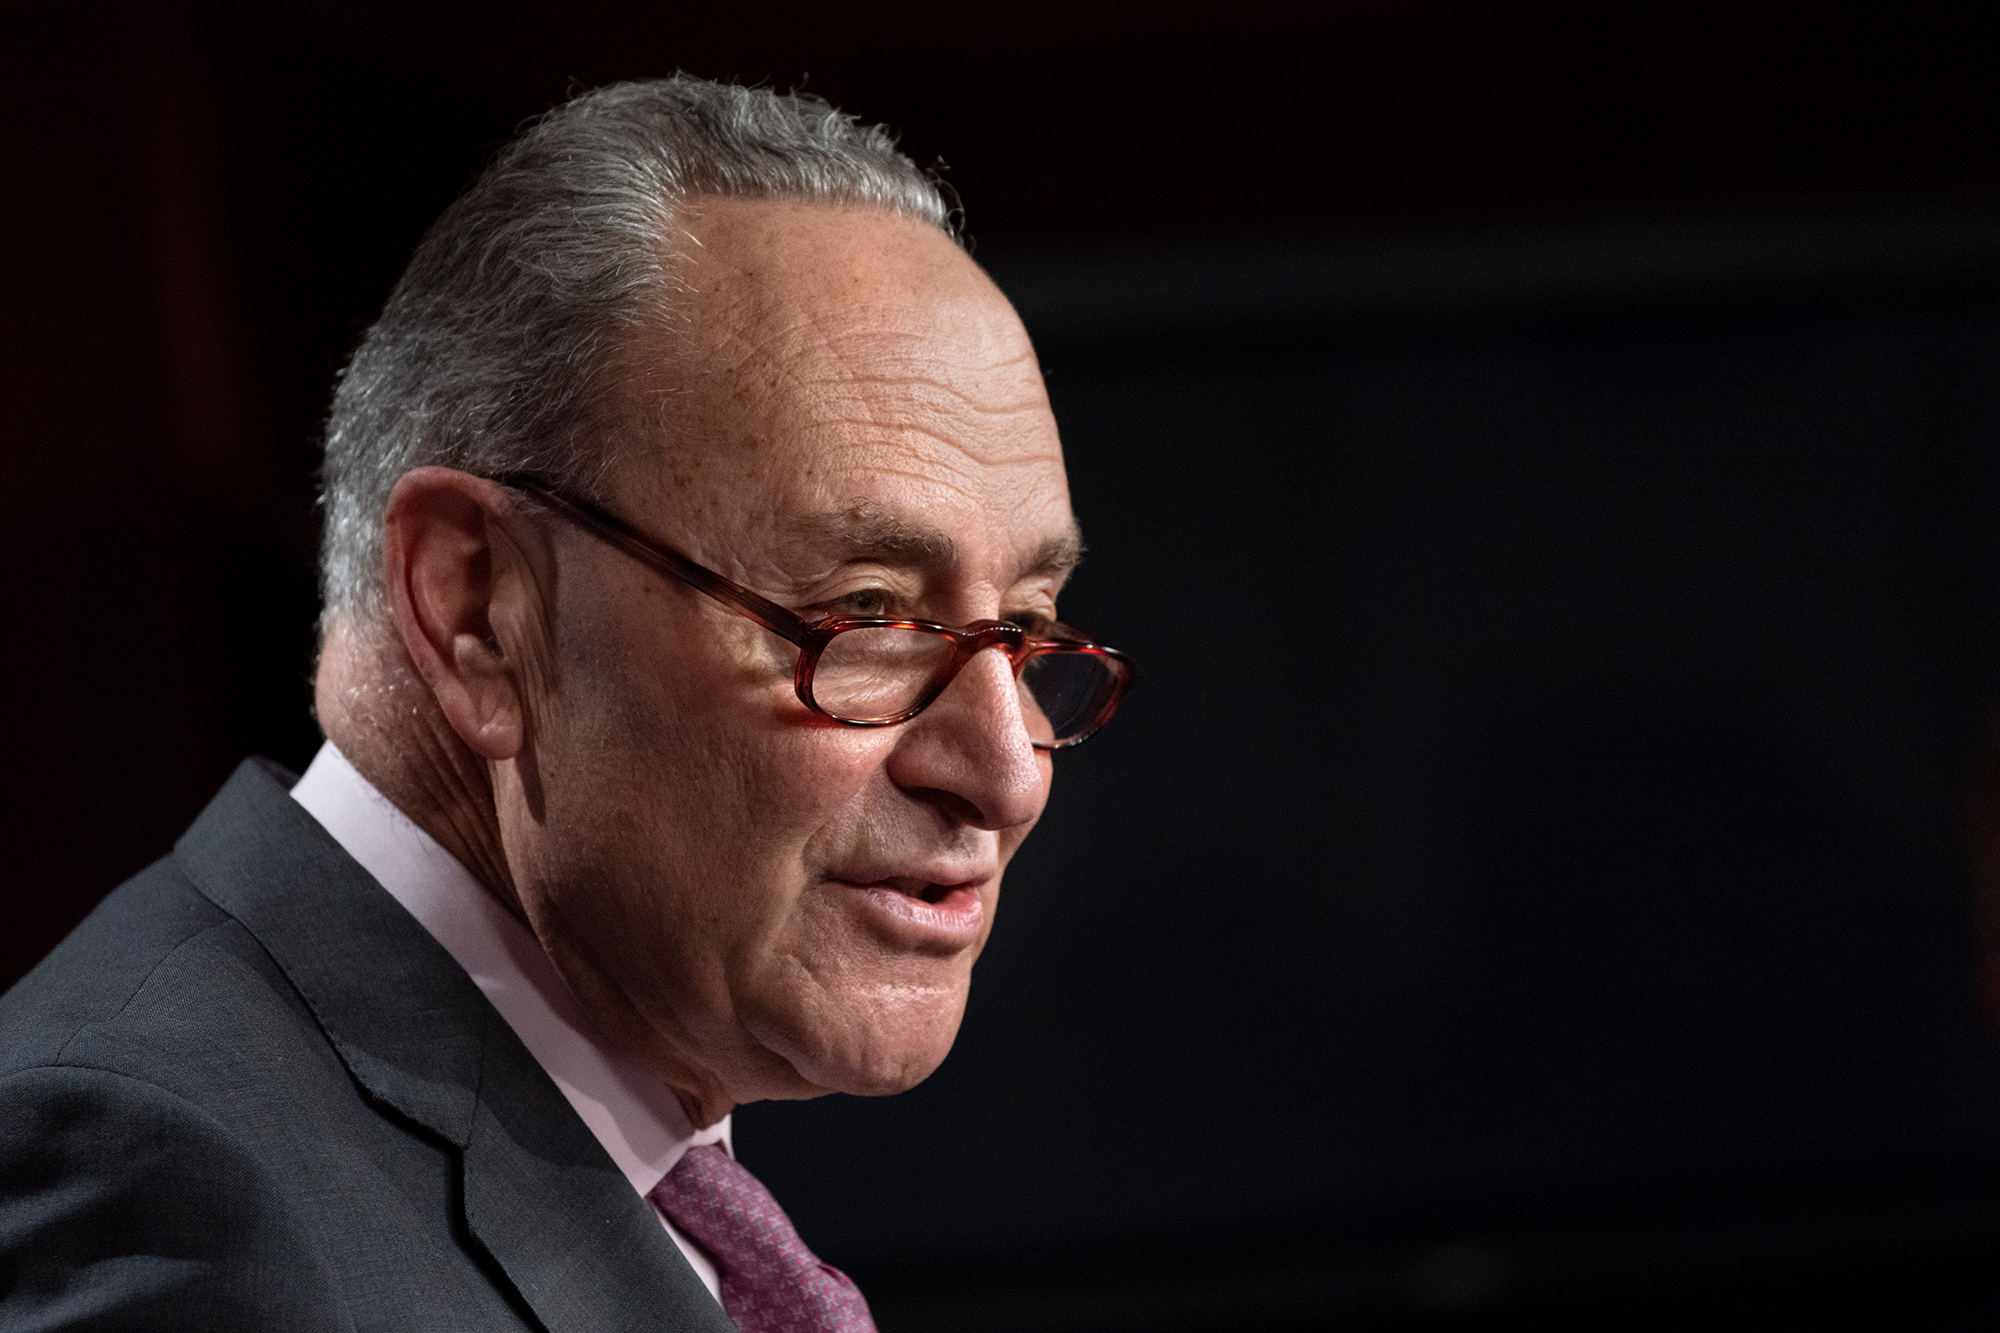 Senate Majority Leader Chuck Schumer, D-N.Y., speaks to the media on Tuesday, March 2, 2021, on Capitol Hill in Washington.